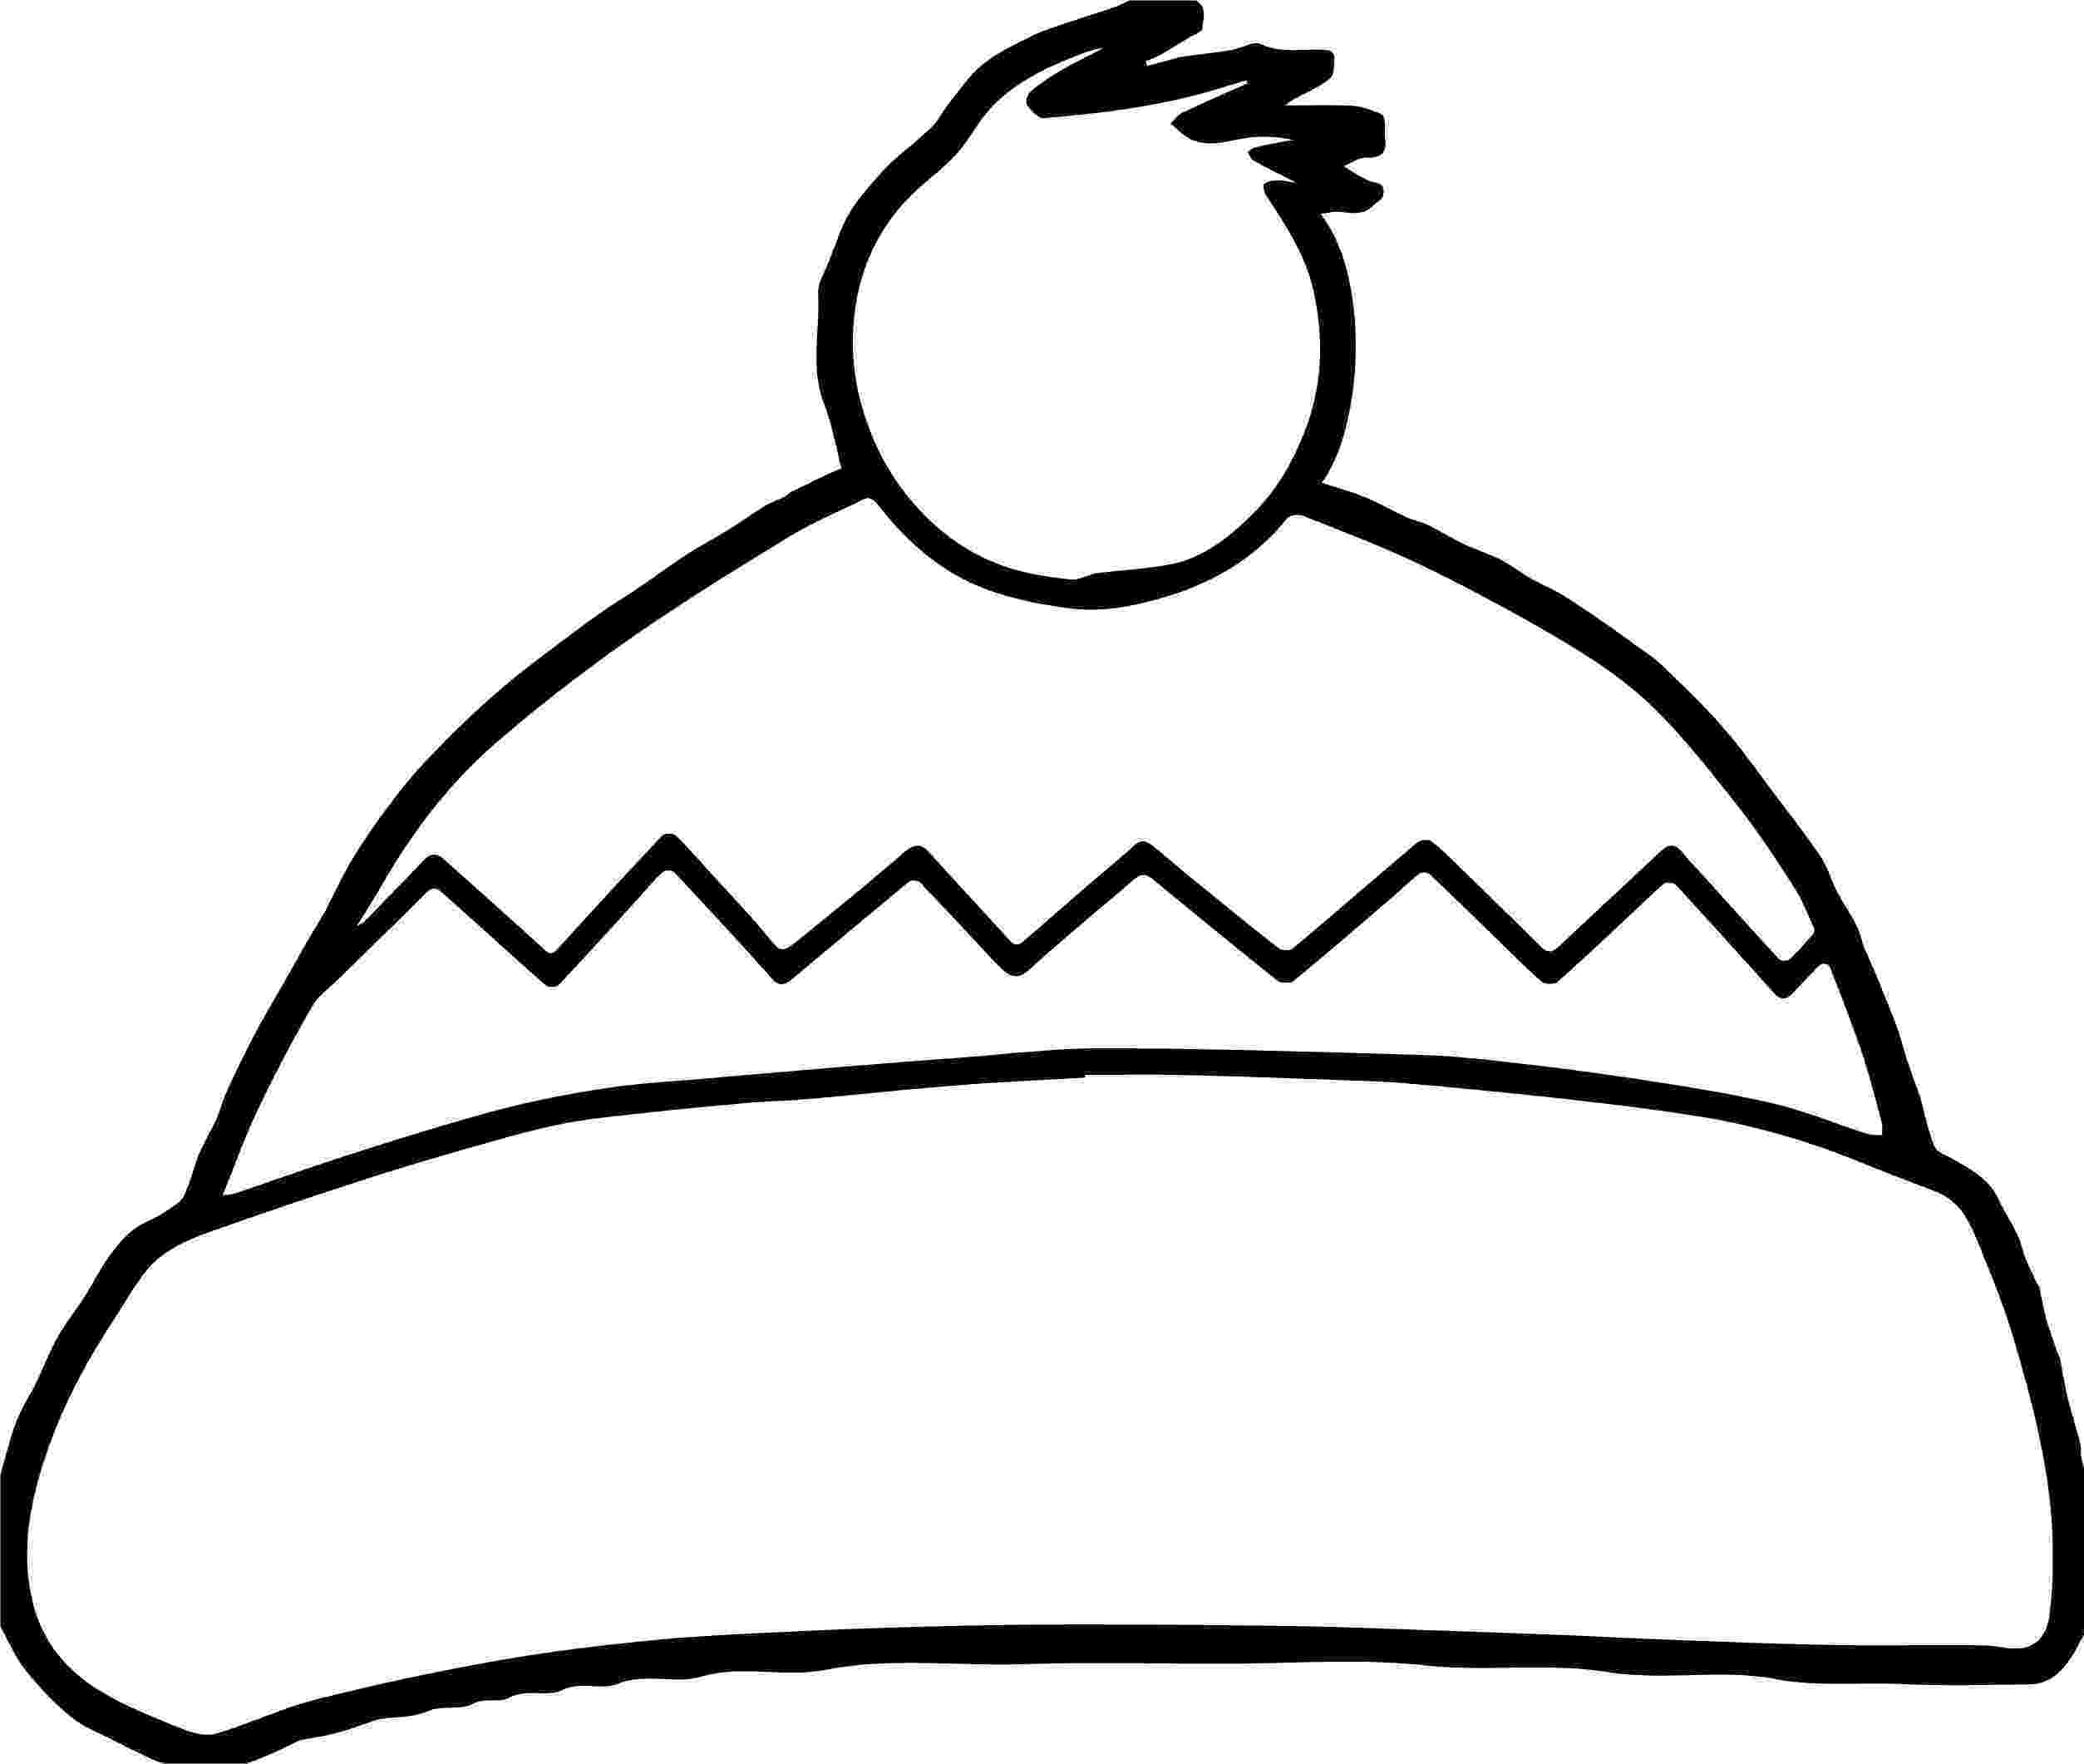 selinux coloring book hat coloring pages kidsuki book coloring selinux